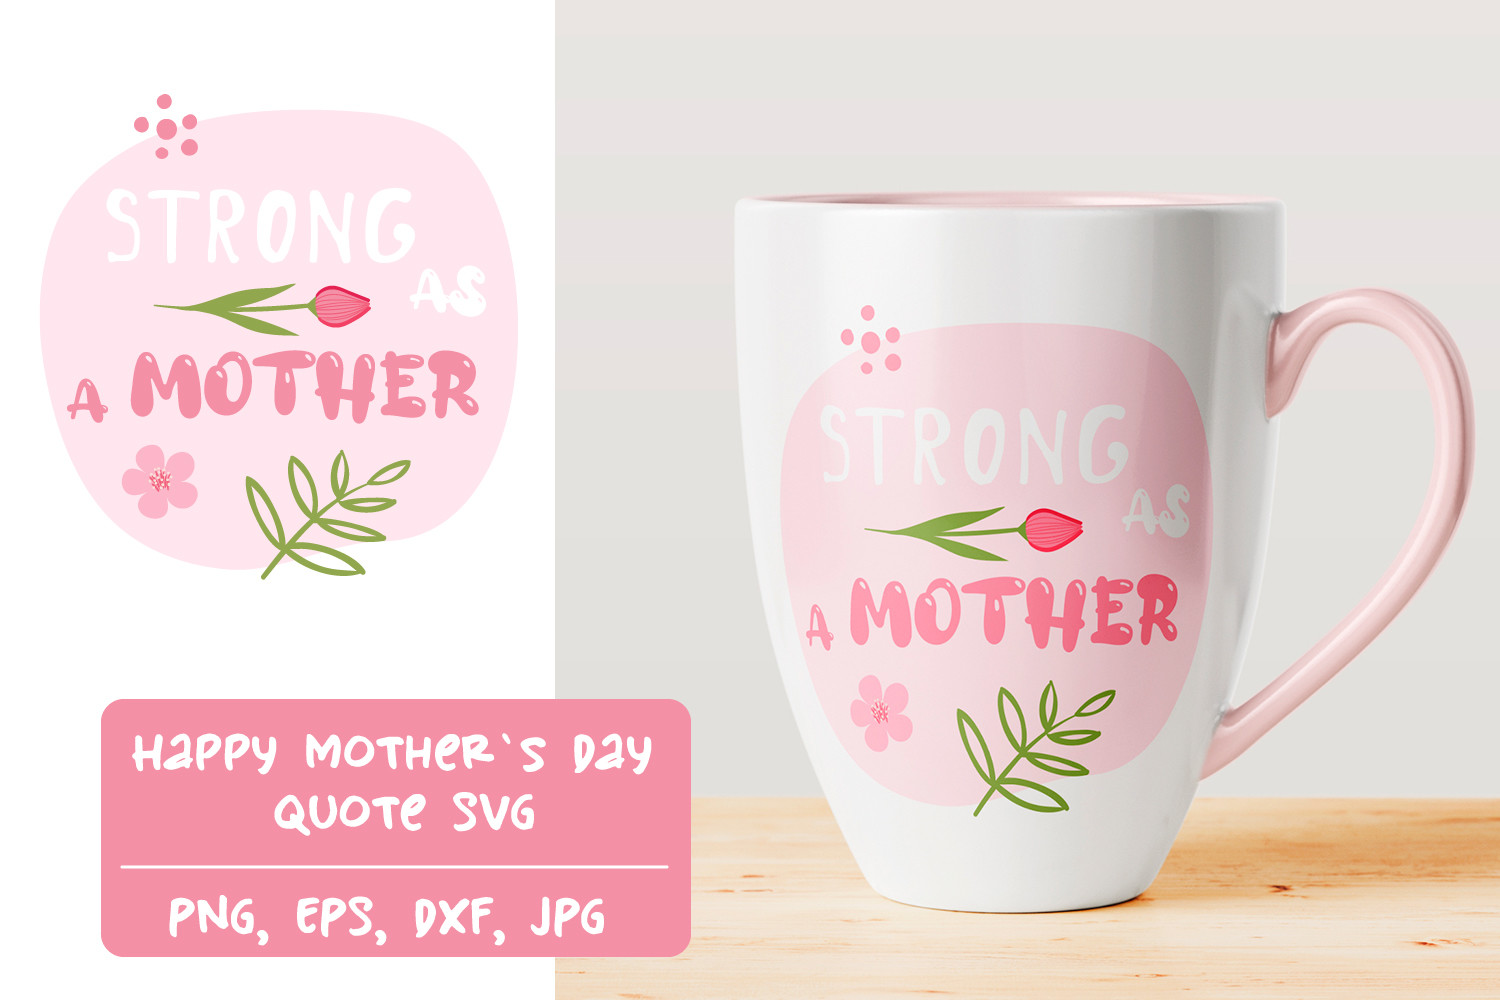 Strong As a Mother SVG File